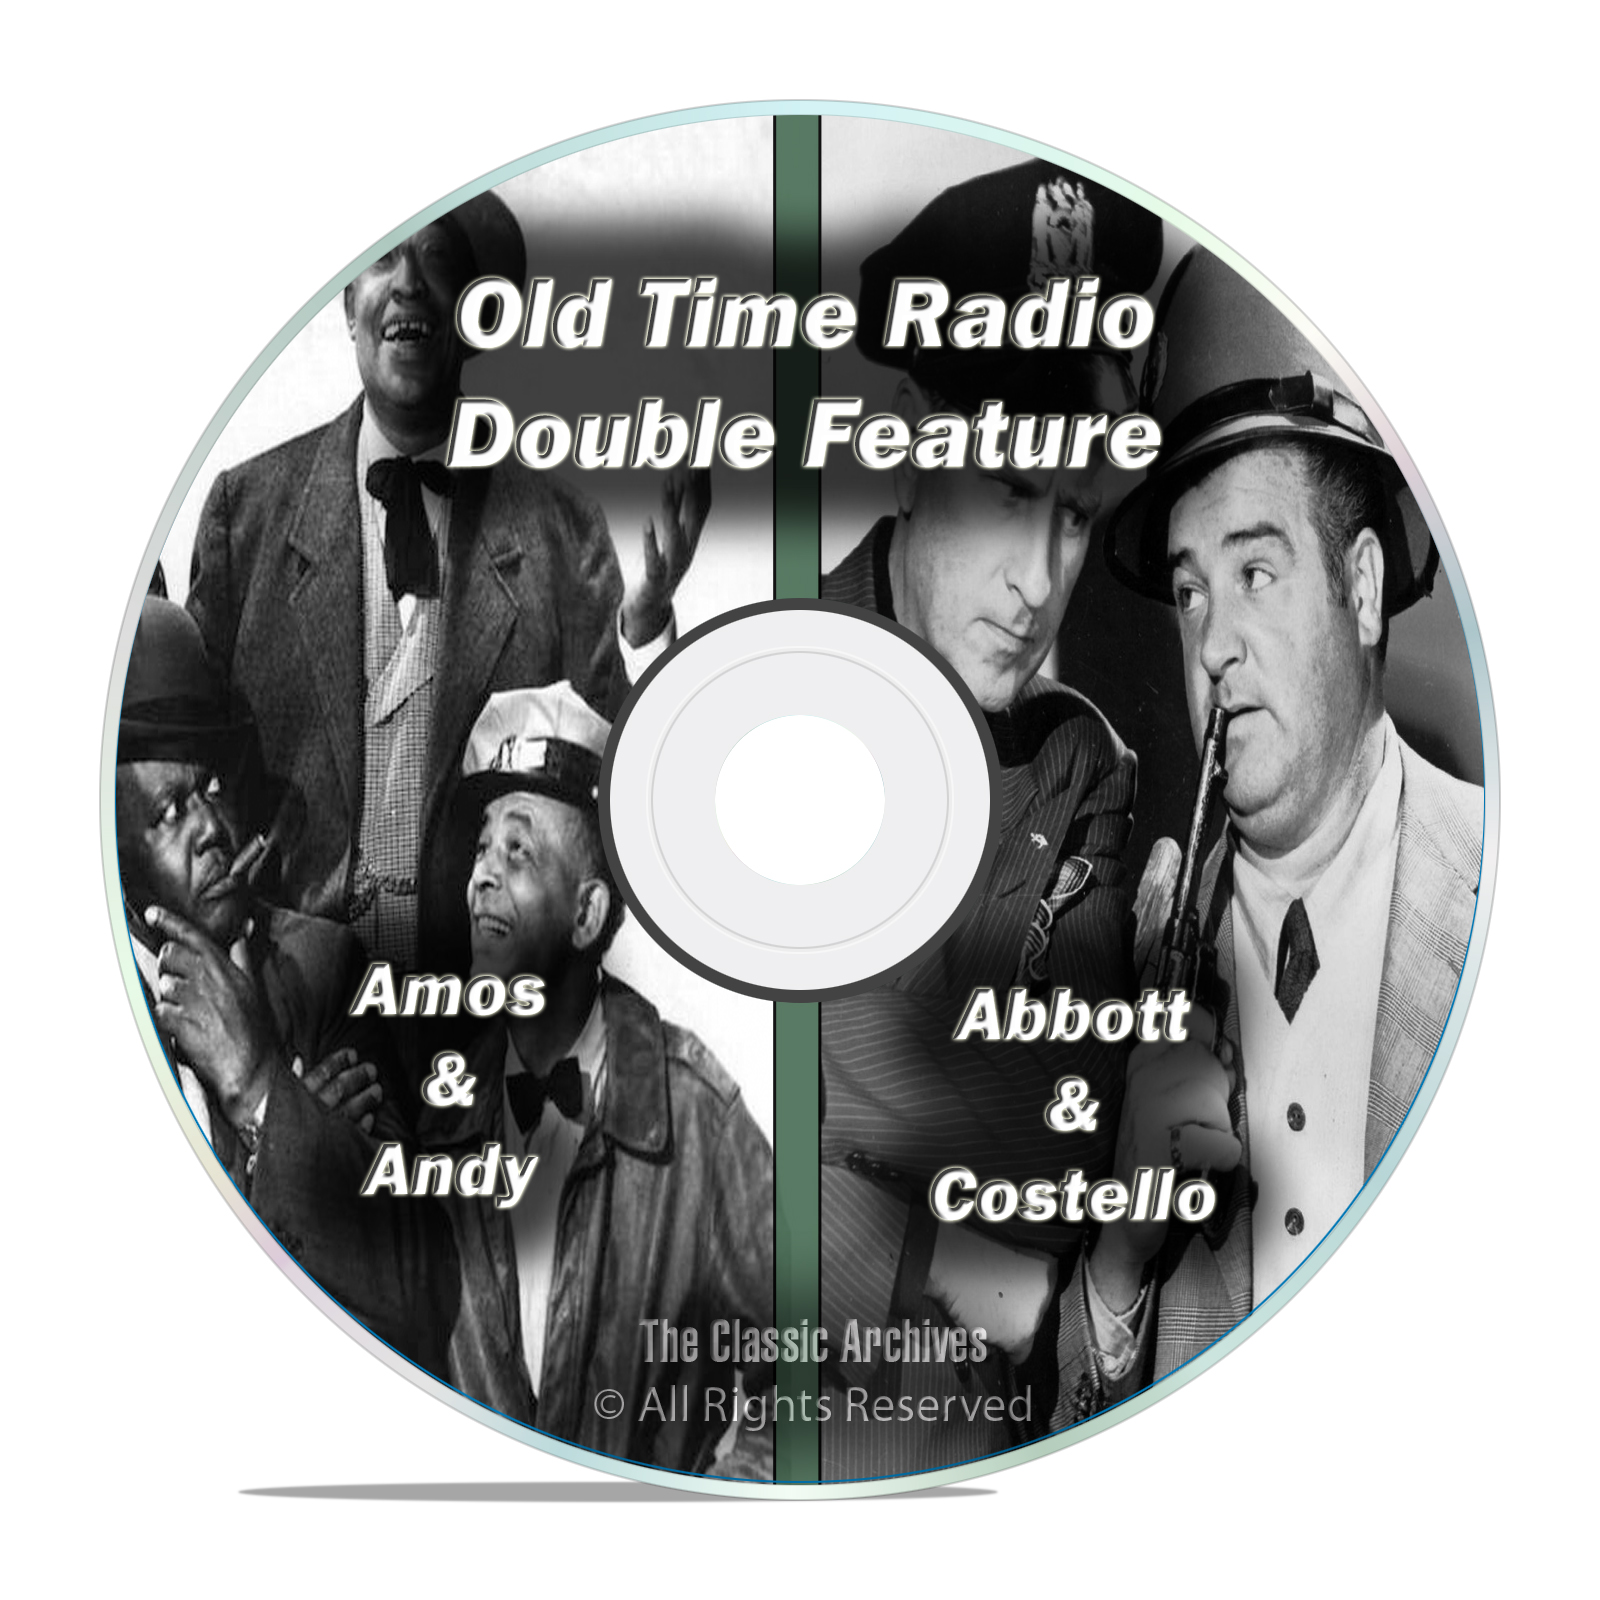 Amos & Andy, Abbott & Costello, 707 FULL RUN COMPLETE SHOWS, OTR MP3 DVD